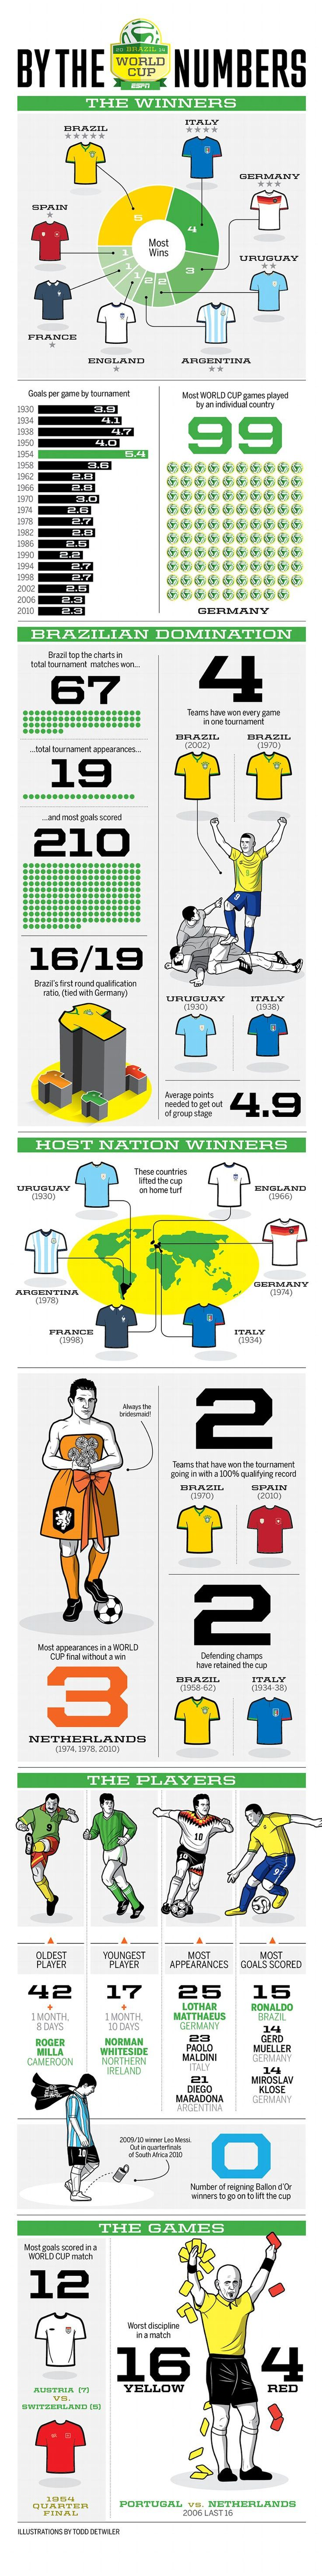 World Cup: Facts and Figures Infographic | Business On Market St.